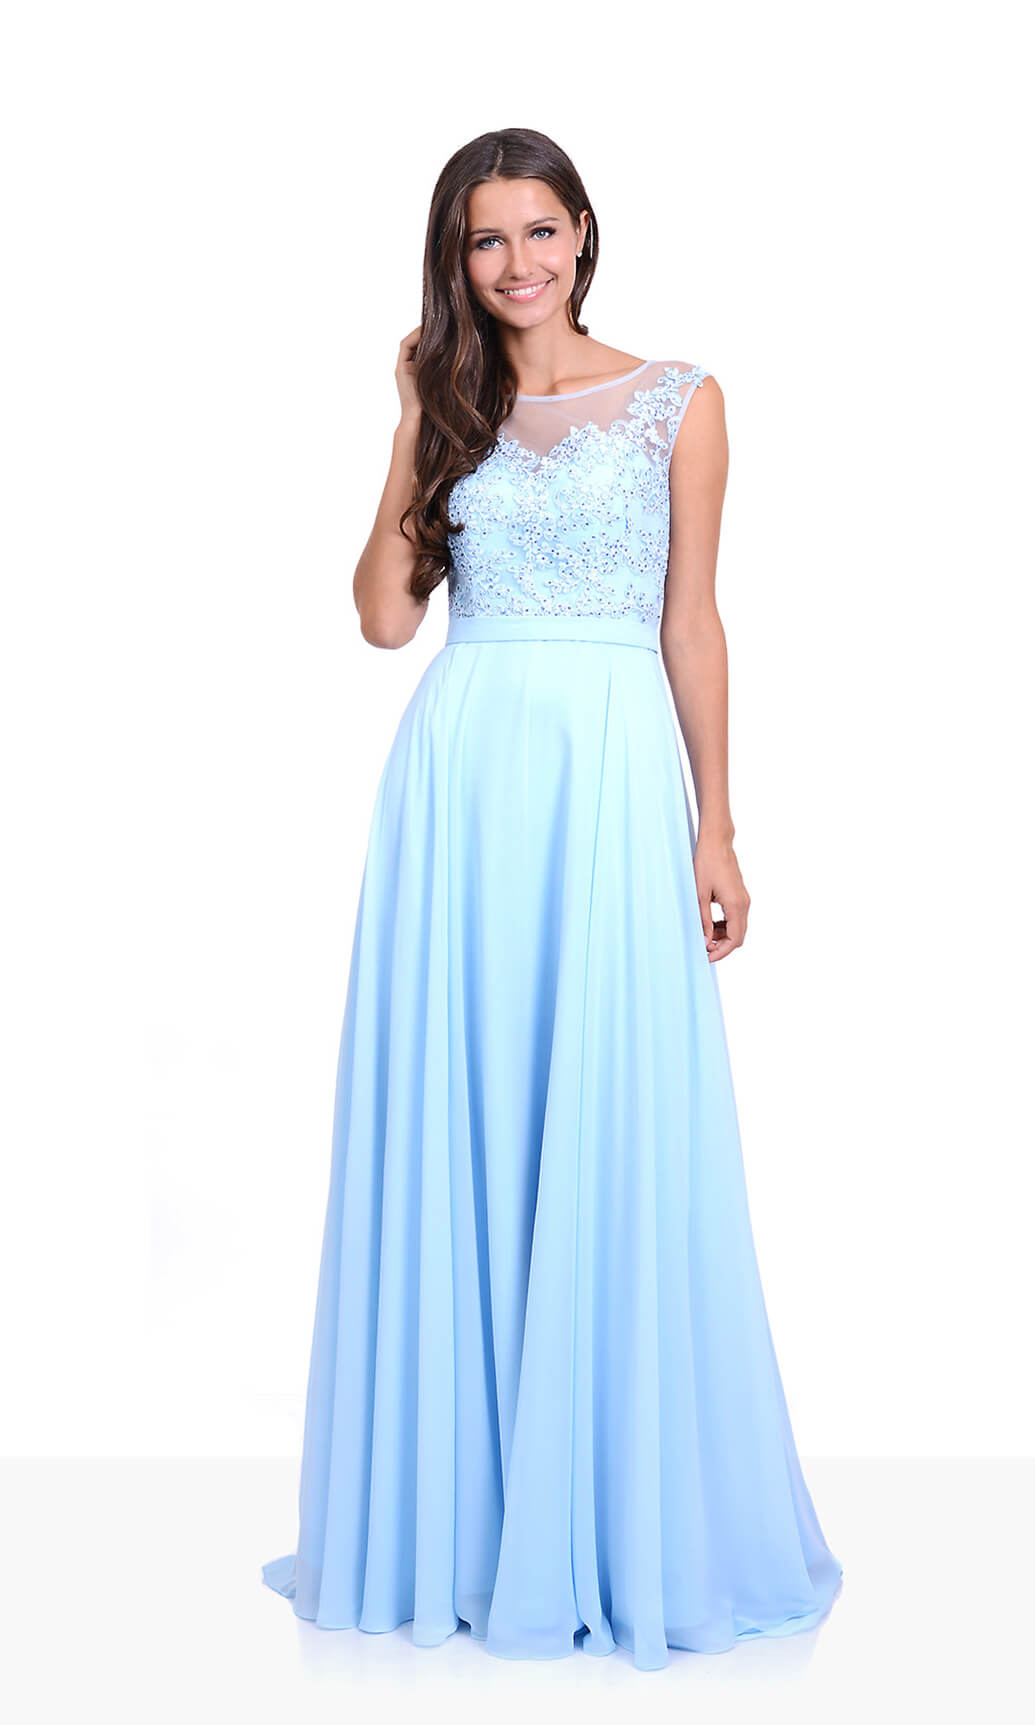 0132 Aqua Blue Christian Koehlert Evening Prom Dress - Fab Frocks